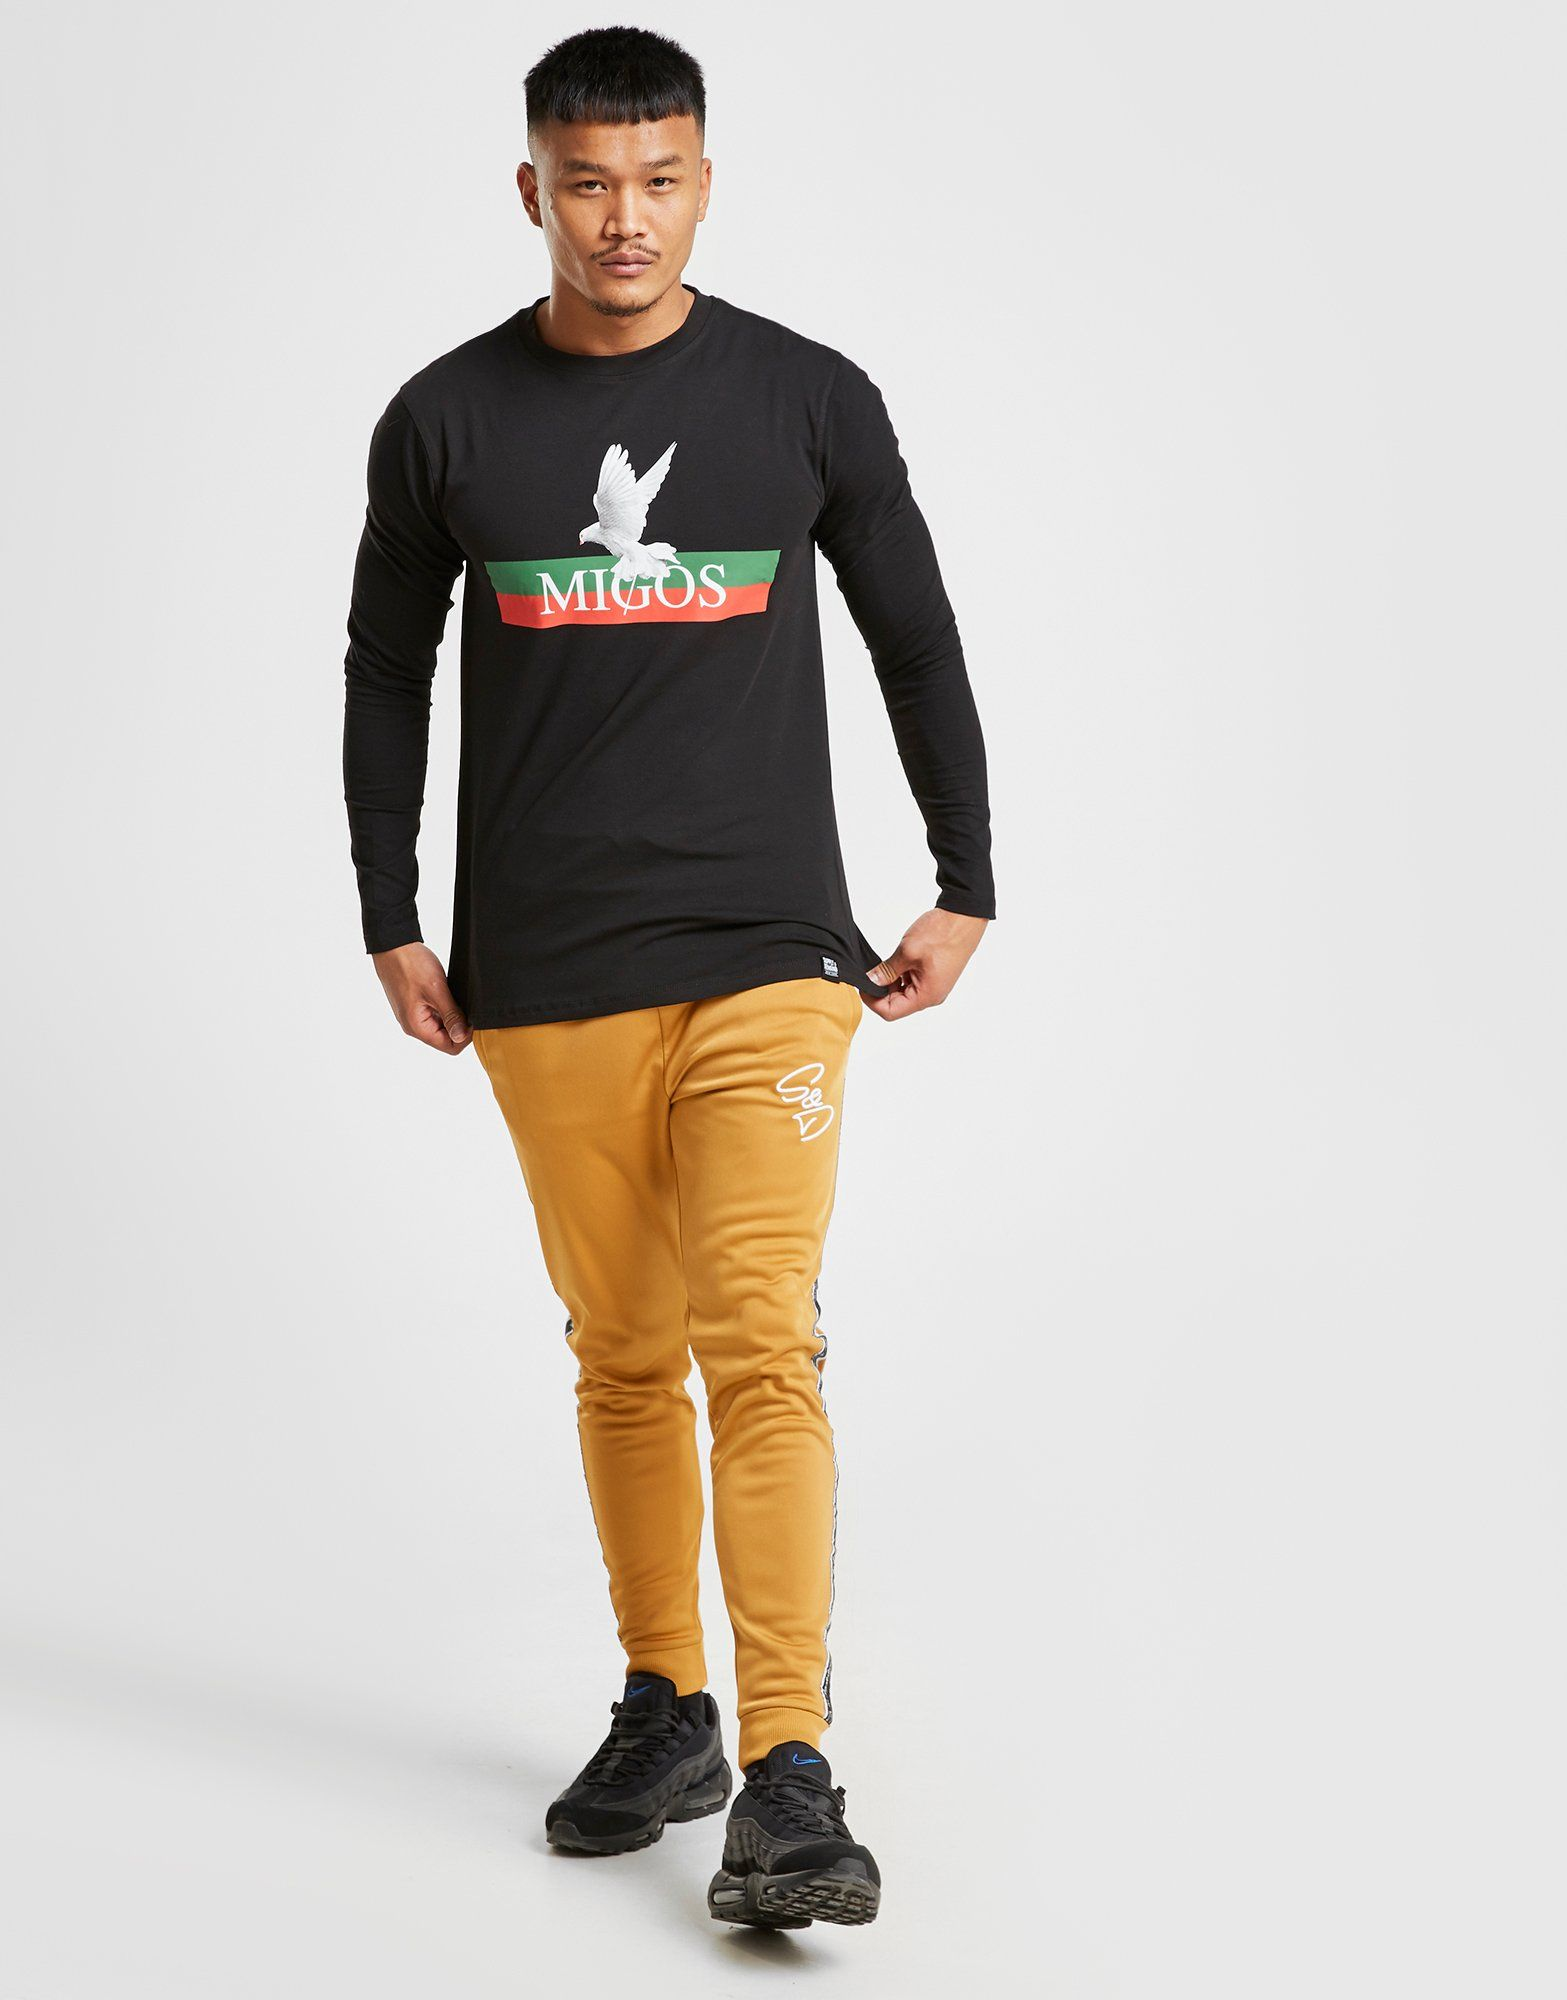 Supply & Demand Migos Long Sleeve T-Shirt